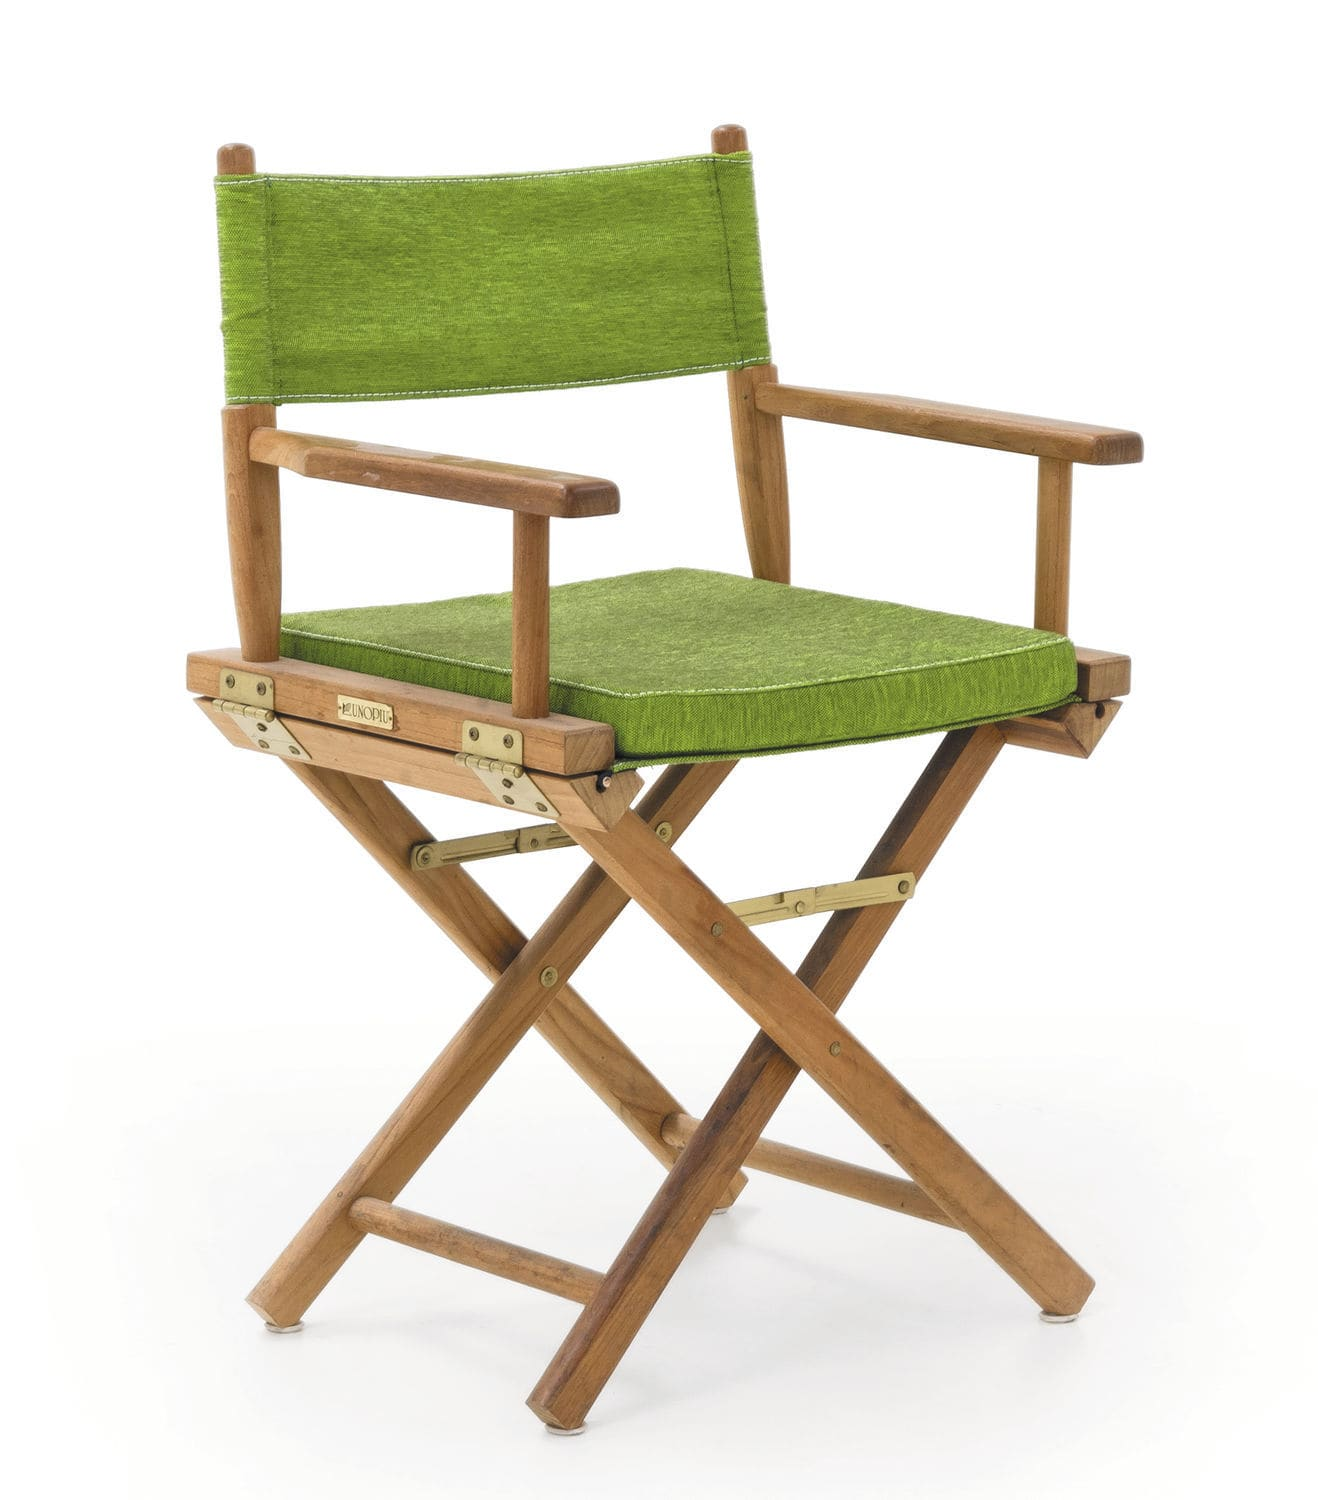 Chaise de jardin contemporaine pliante en noyer GINGER Unopiu